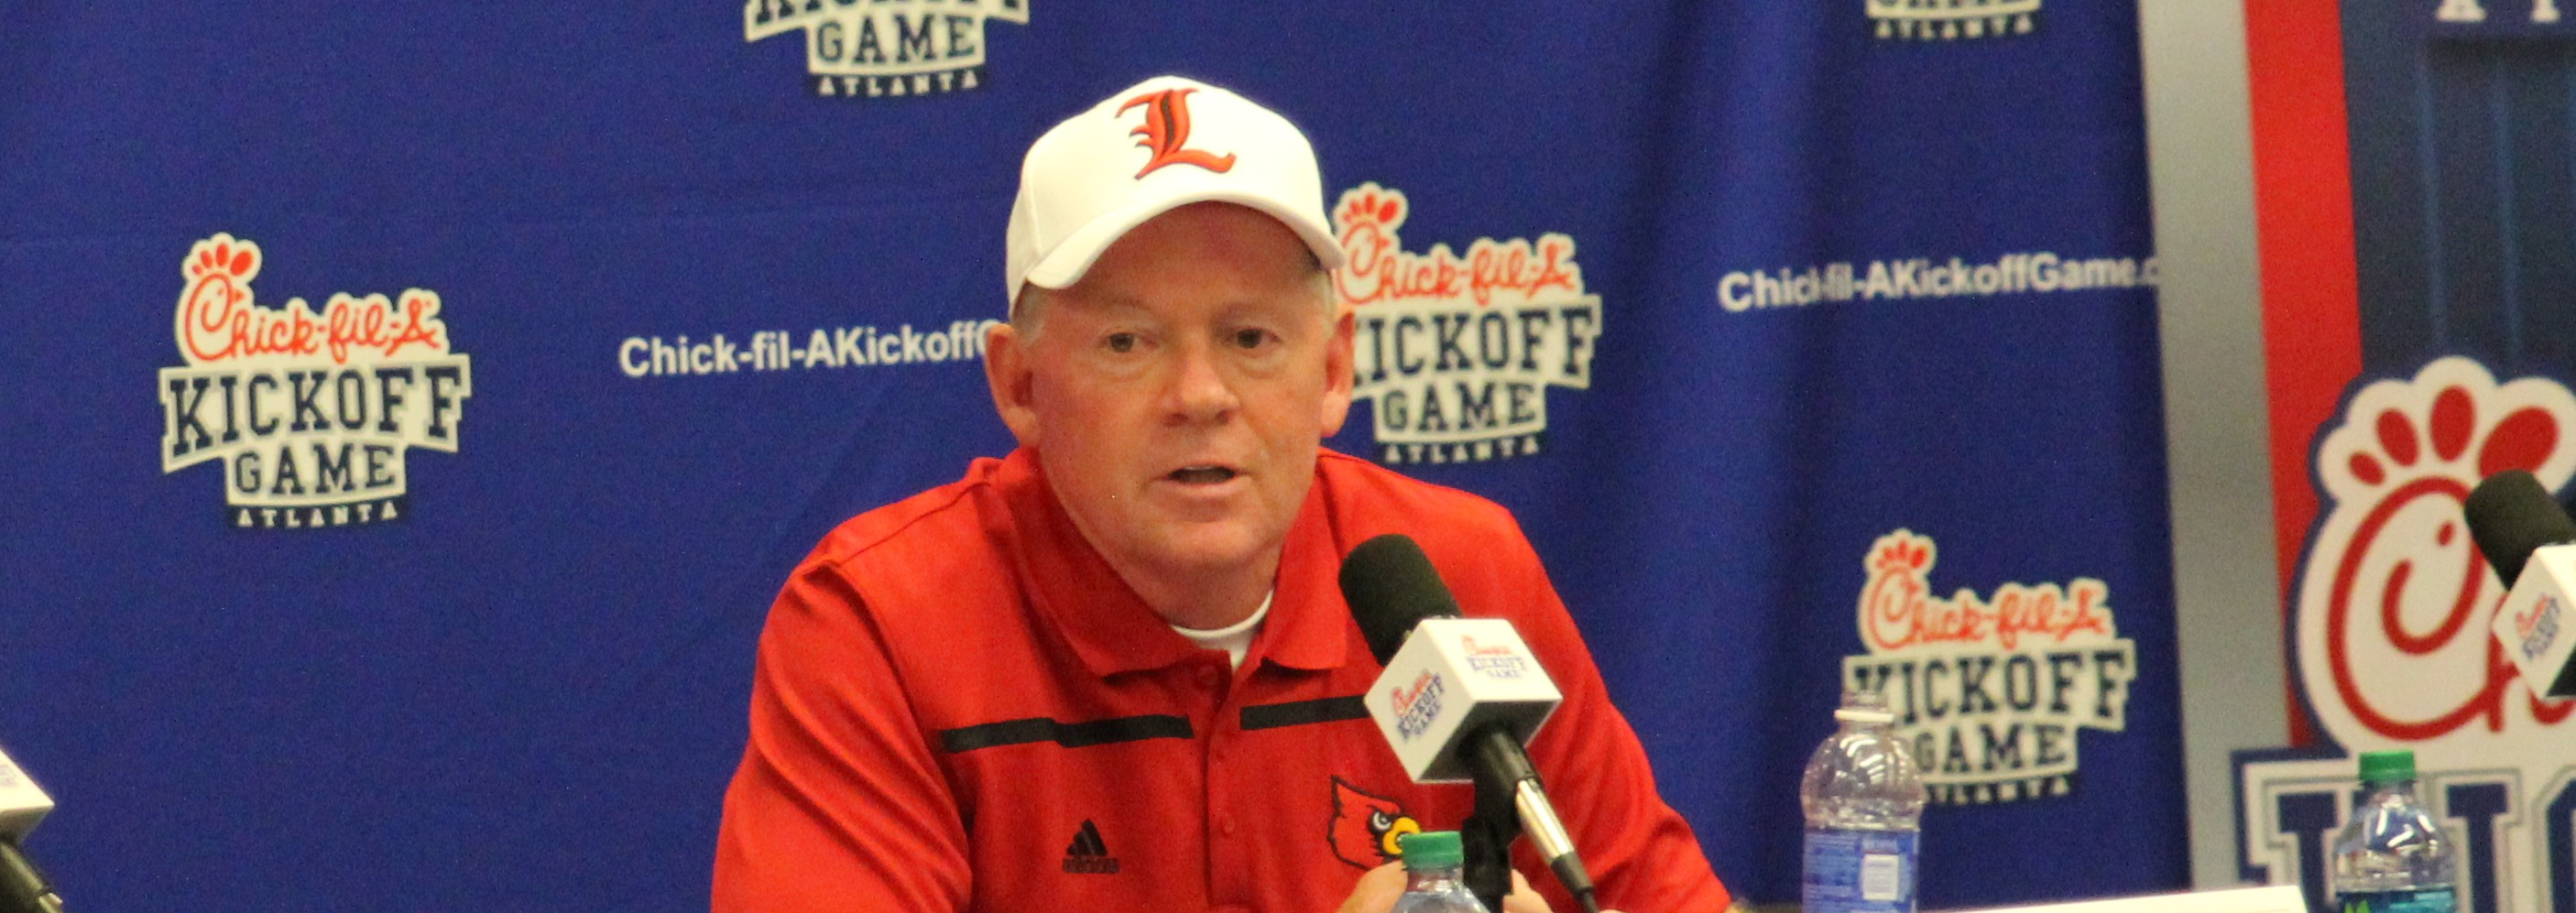 Bobby Petrino after a 31-24 loss to Auburn in the Chick-fil-A Kickoff. Louisville vs. Auburn 2015 in the Georgia Dome. Photo by William Caudill